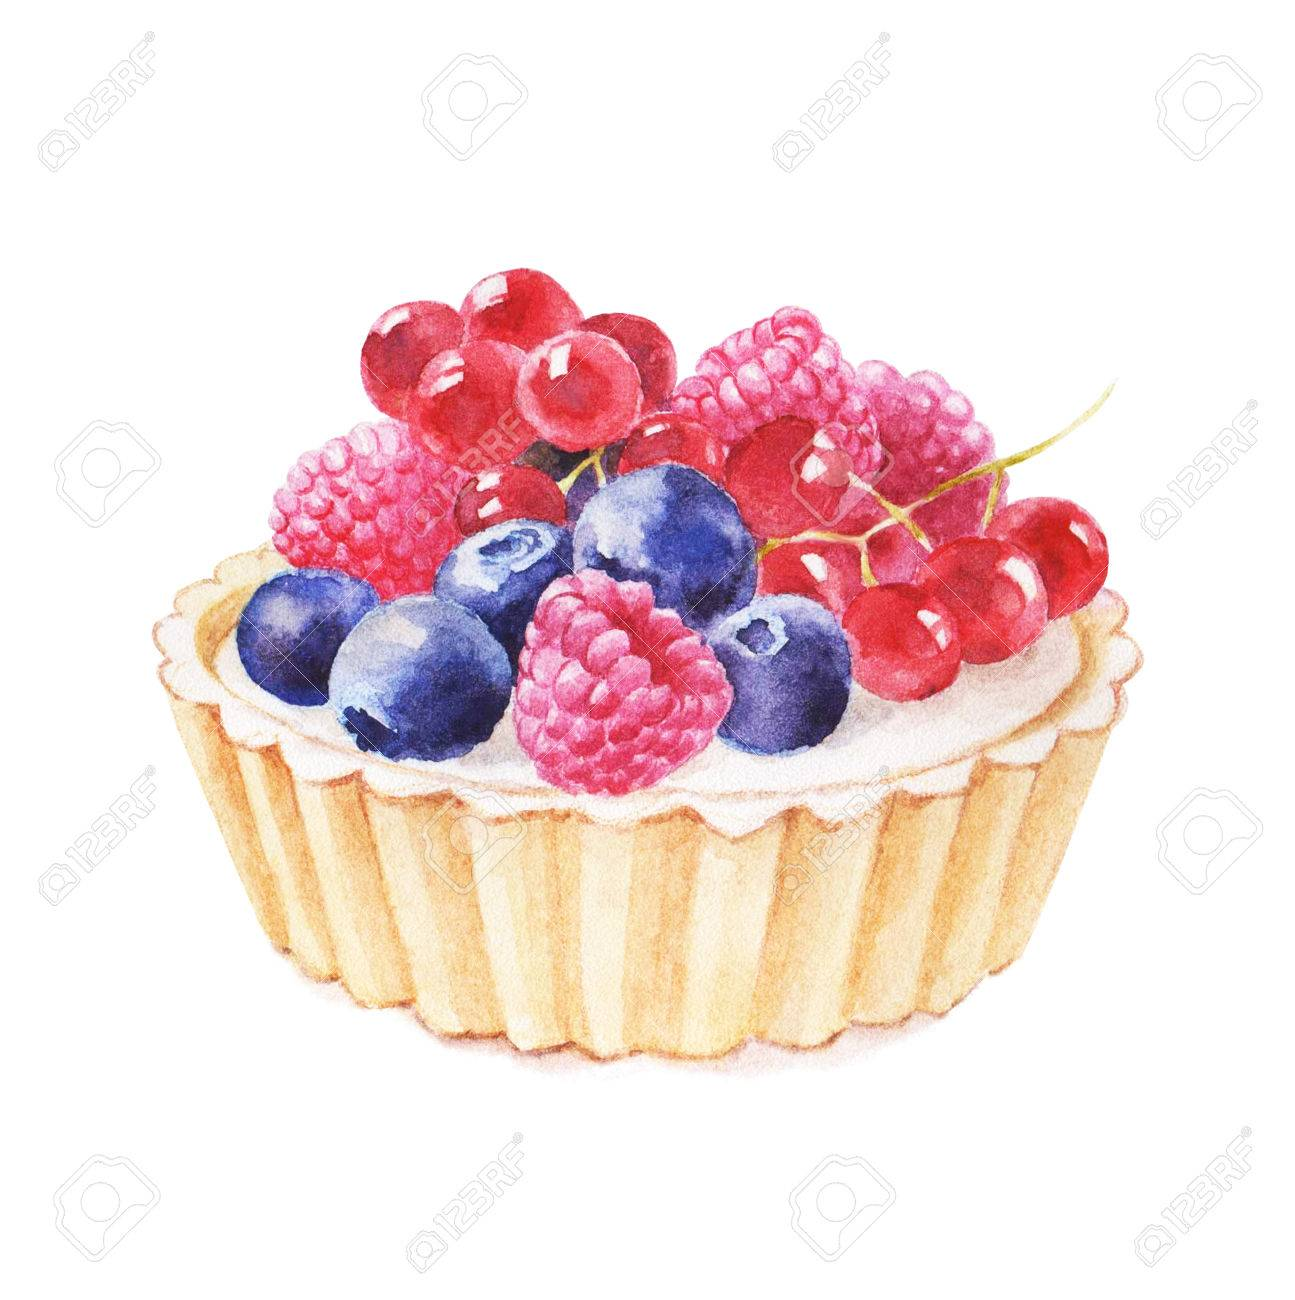 Tartlet with fruit hand drawn watercolor illustration on white background. It can be used for card, postcard, cover, invitation, wedding card, birthday card. - 67669953